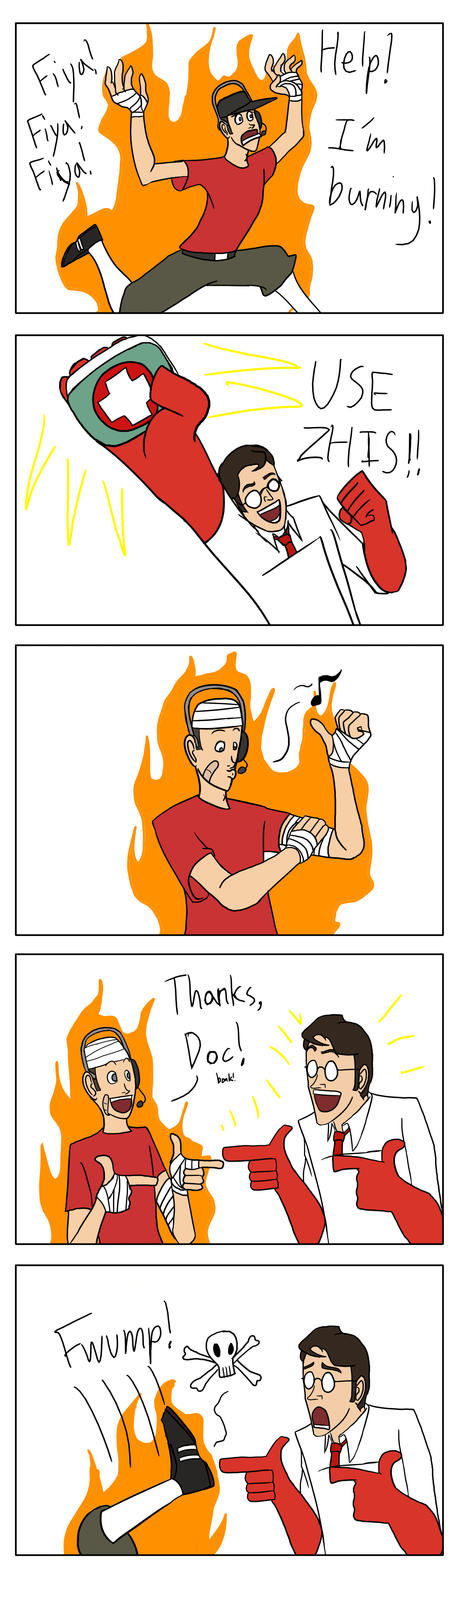 TF2__Extinguish_by_Pandadrake.jpg